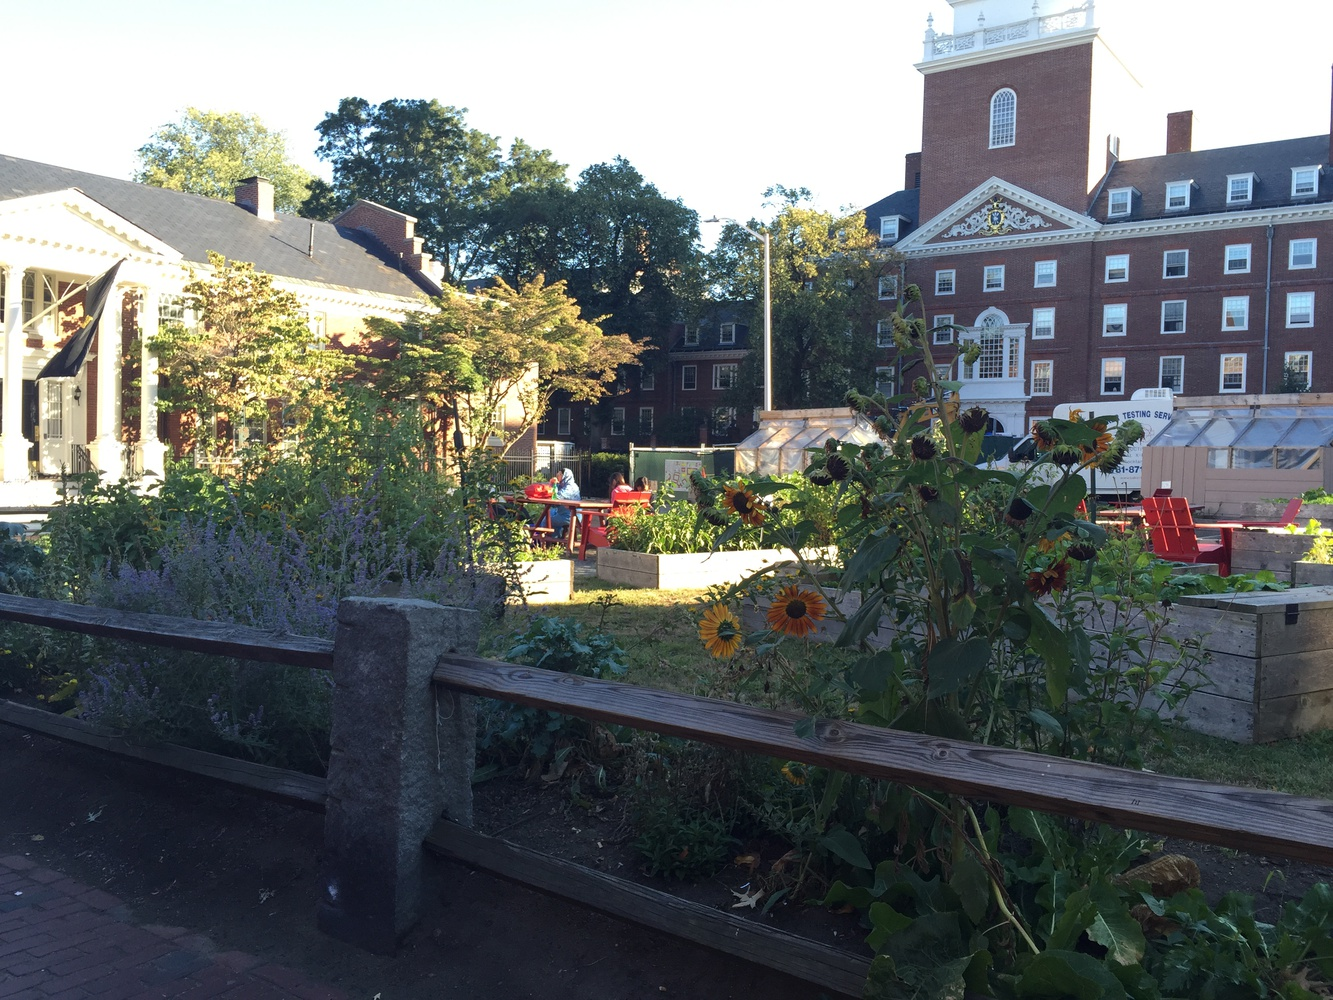 The Community Garden, where Farmal will take place this Saturday.